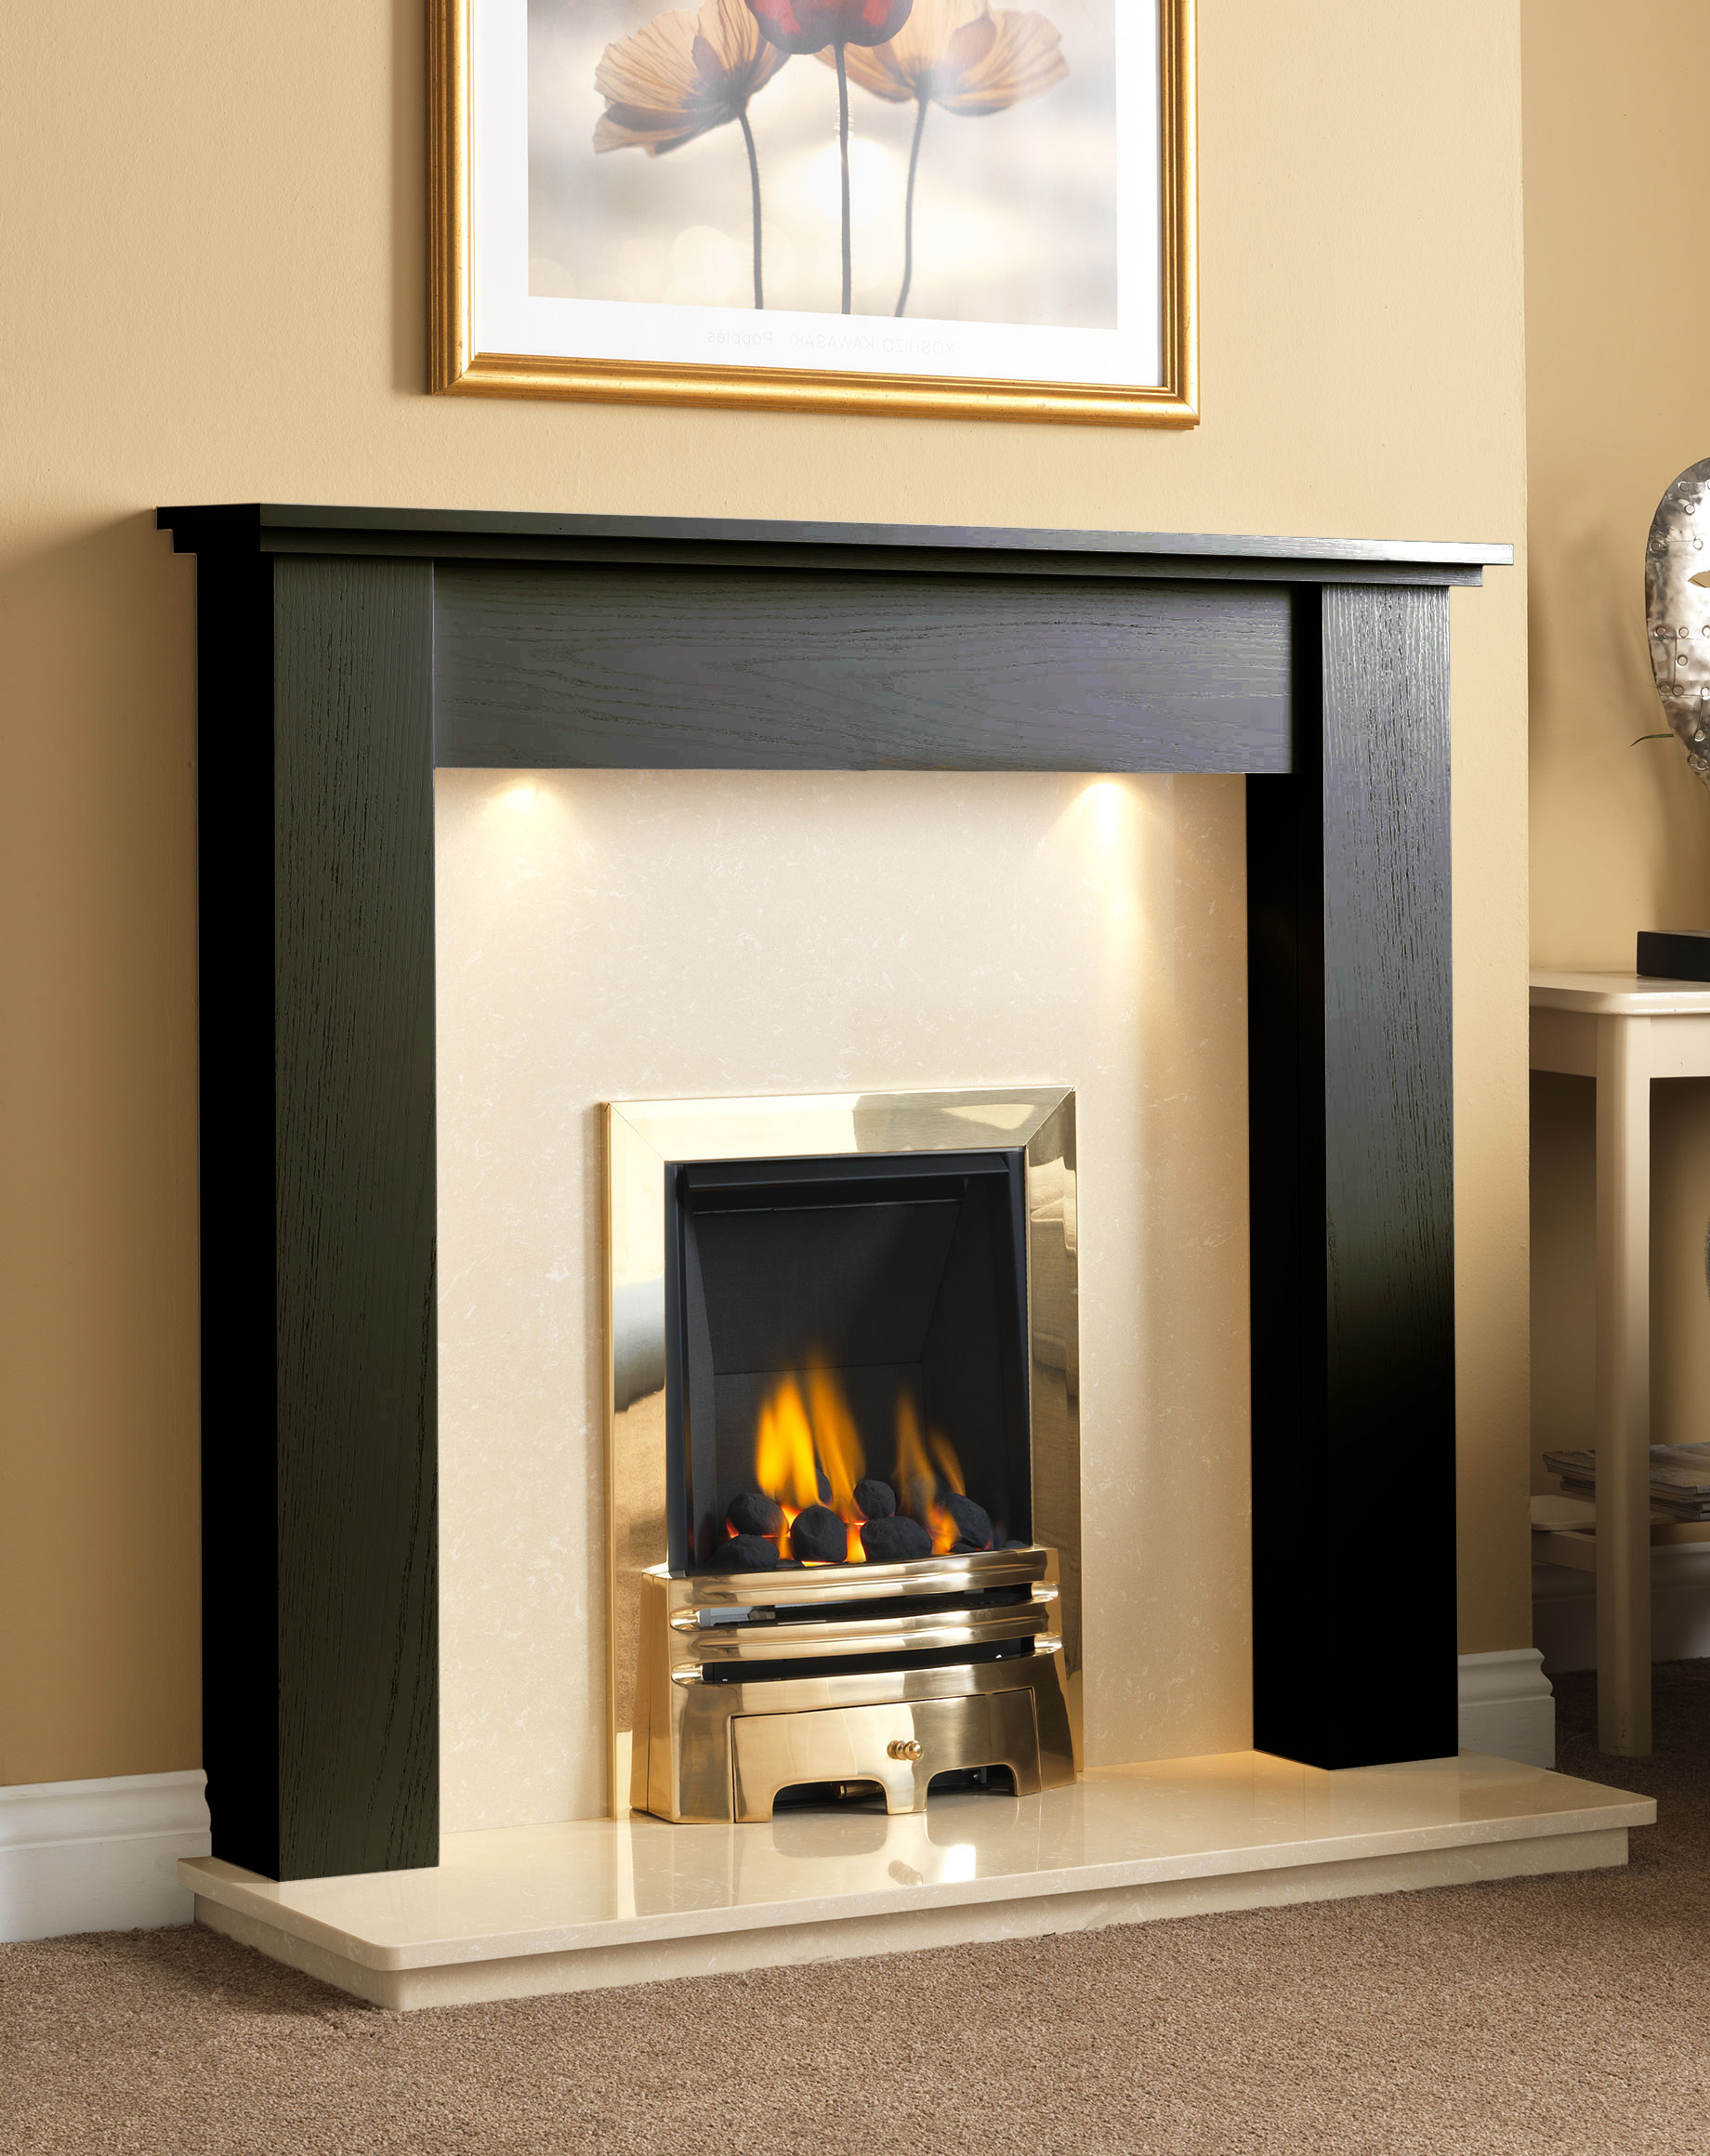 Appleby Wood Fire Surround Fires And Surrounds